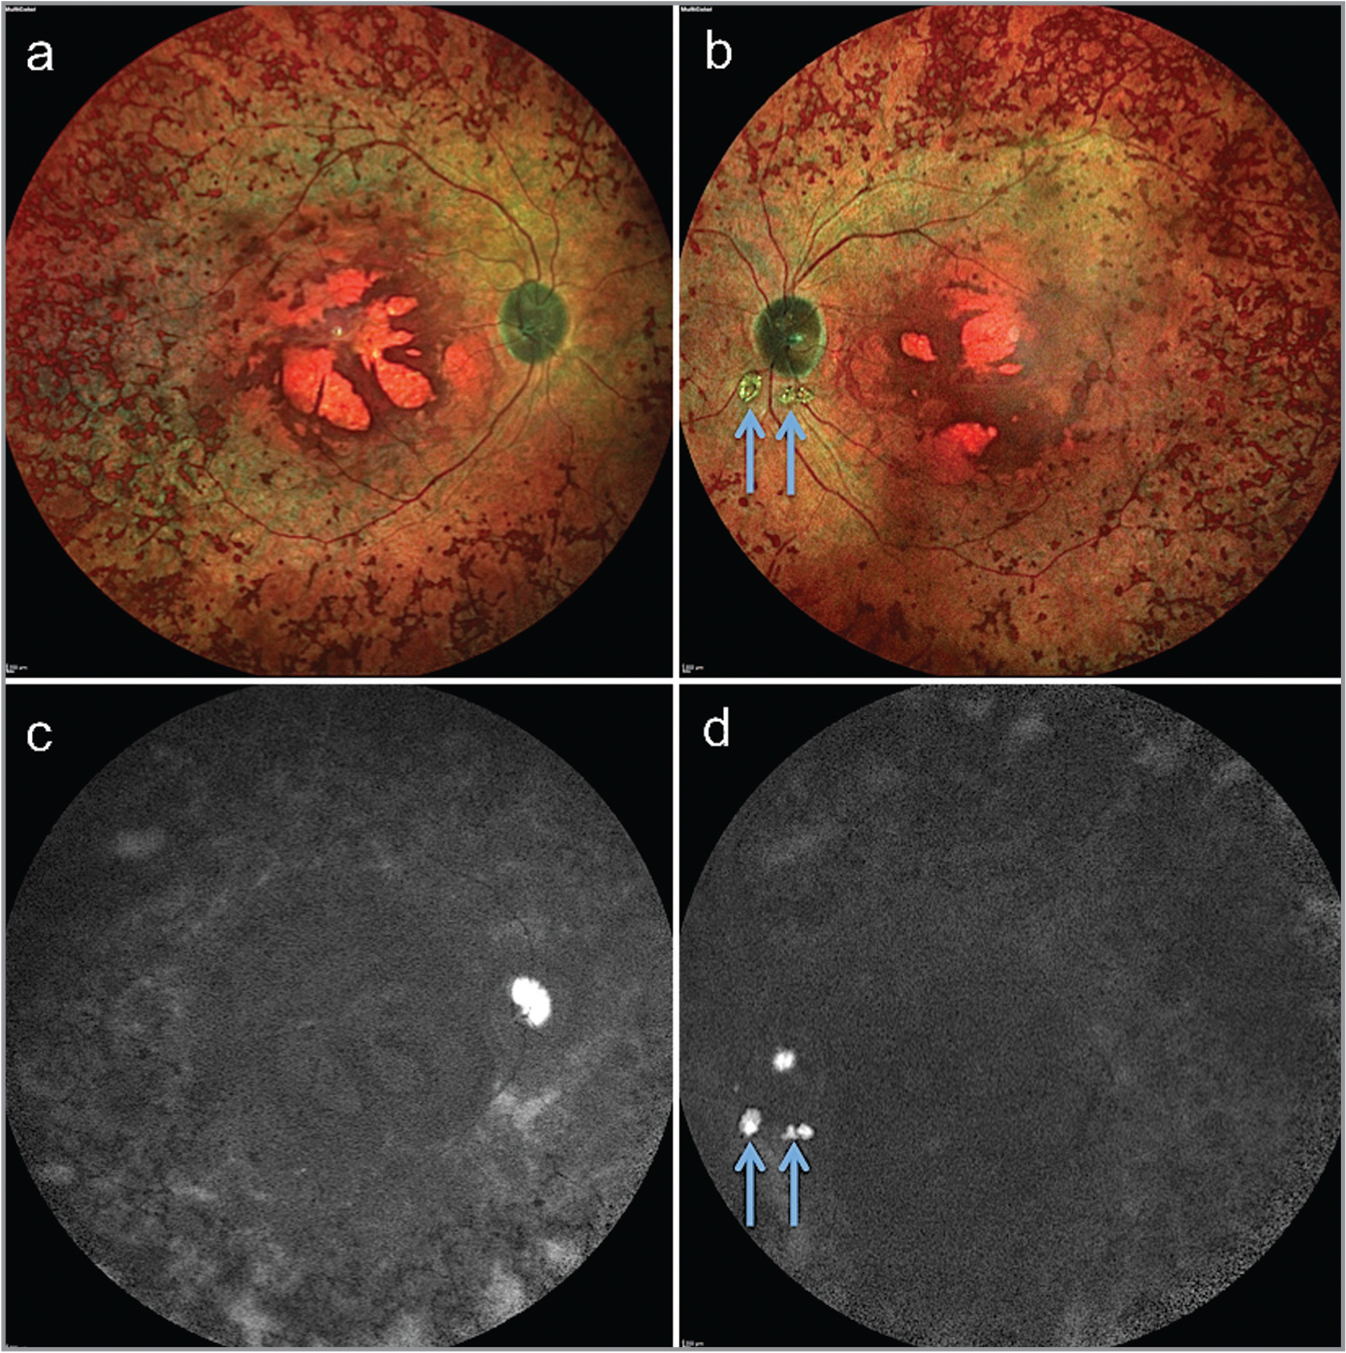 "(a, b) Dilated fundus examination revealed widespread bone spicule pigmentation with ""macular coloboma"" in both eyes (OU). (c, d) Short-wave autofluorescence showed hyperautofluorescent buried optic nerve head drusen and generalized hypoautofluorescence OU. (b, d) The left eye shows parapapillary drusen that resulted from calcification of swollen and disrupted axons at a remote location in the parapapillary area (blue arrows)."